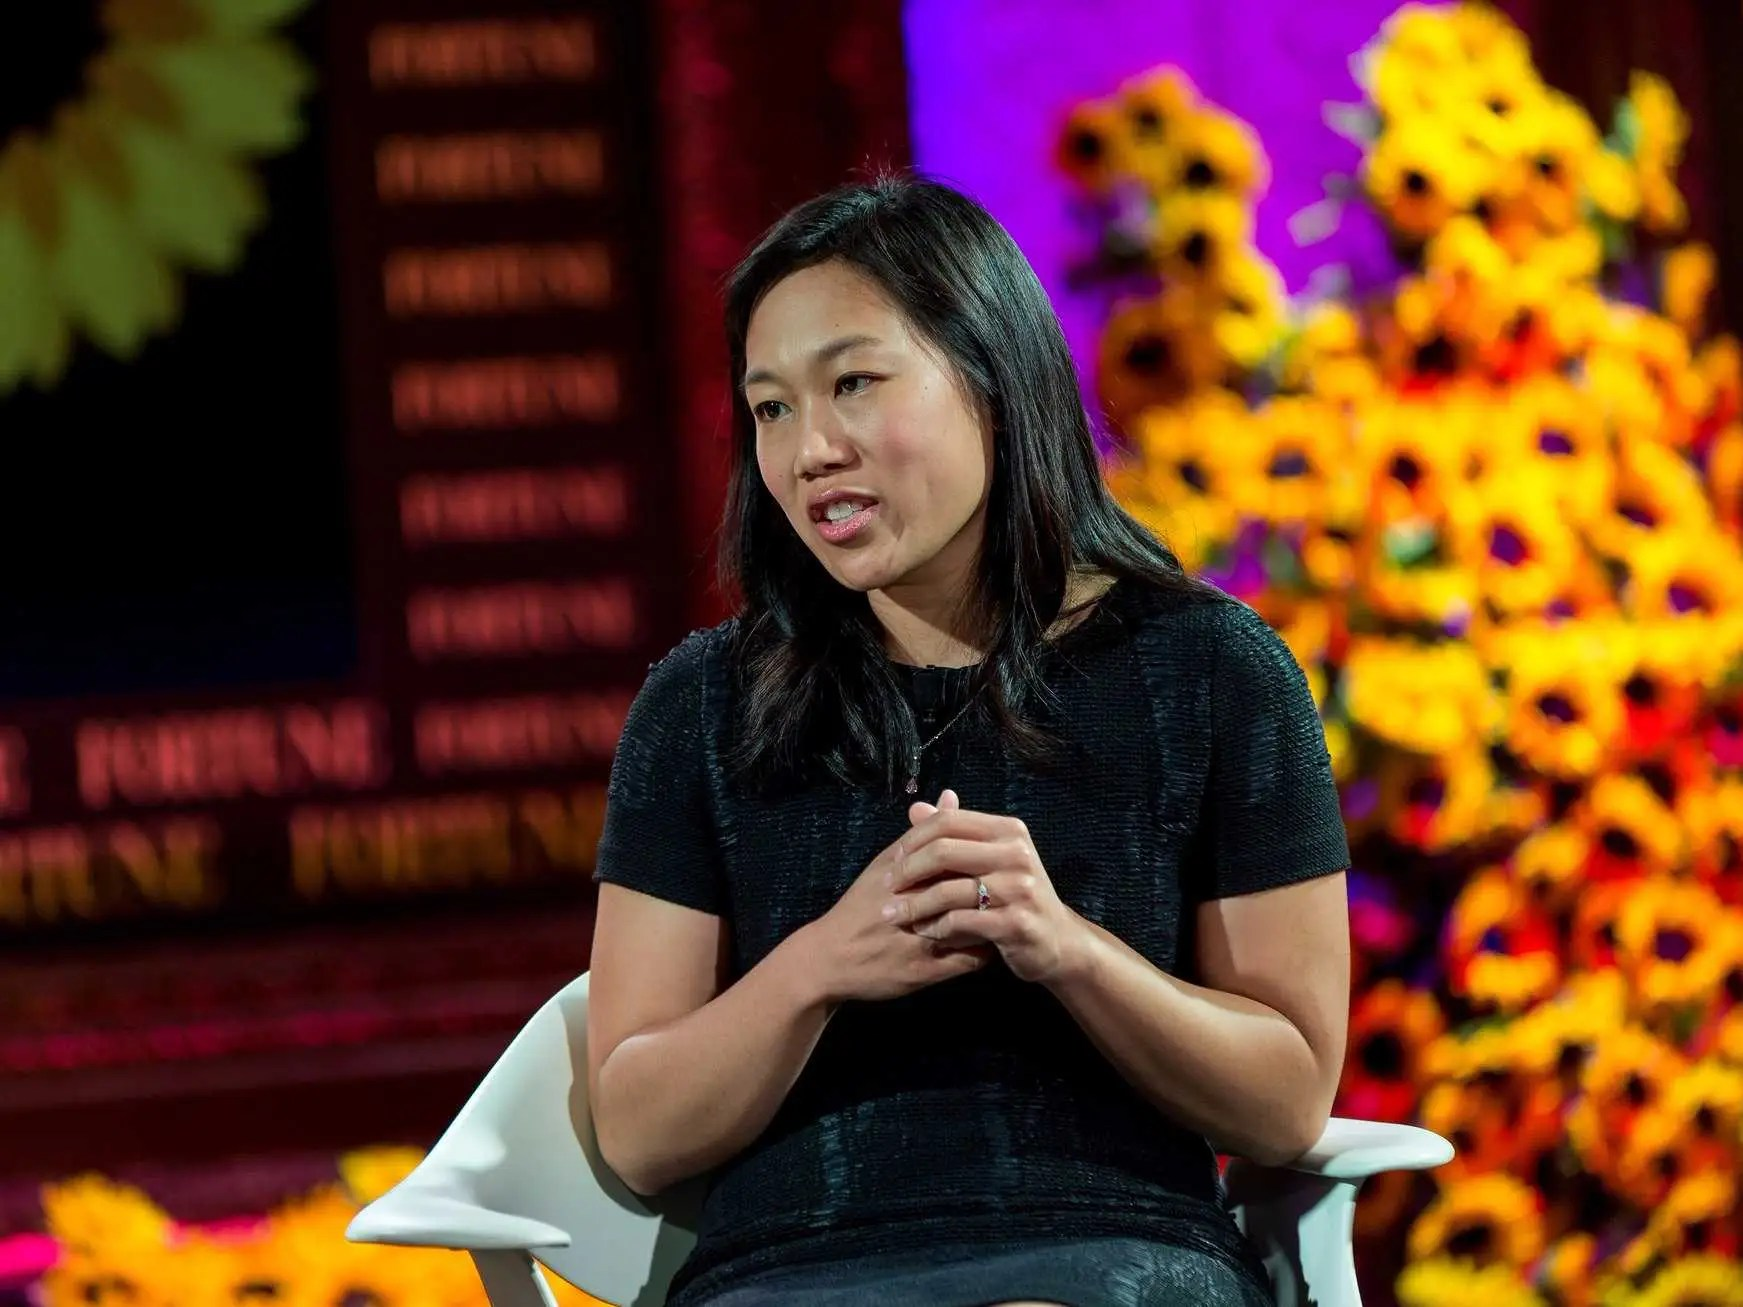 Priscilla Chan Fortune Most Powerful Women Summit